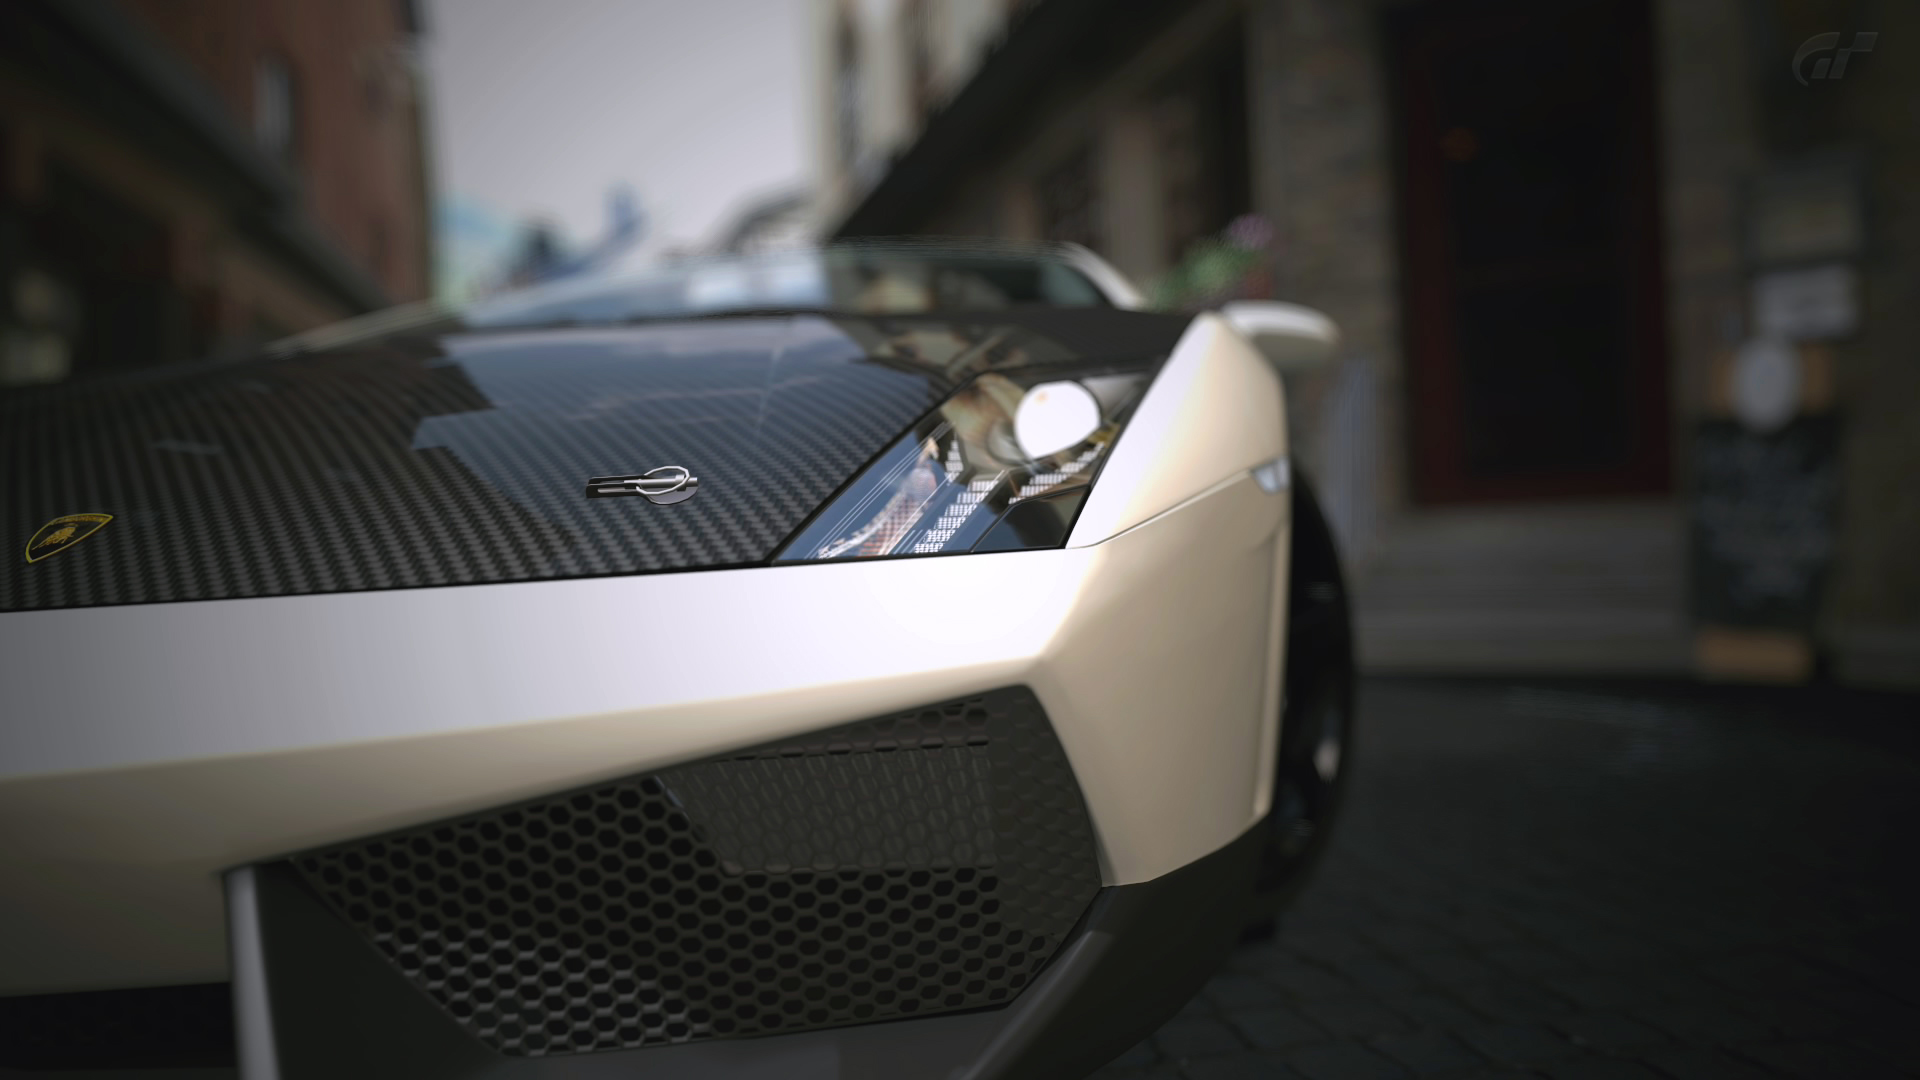 lamborghini wallpapers page hd wallpapers 1920x1080